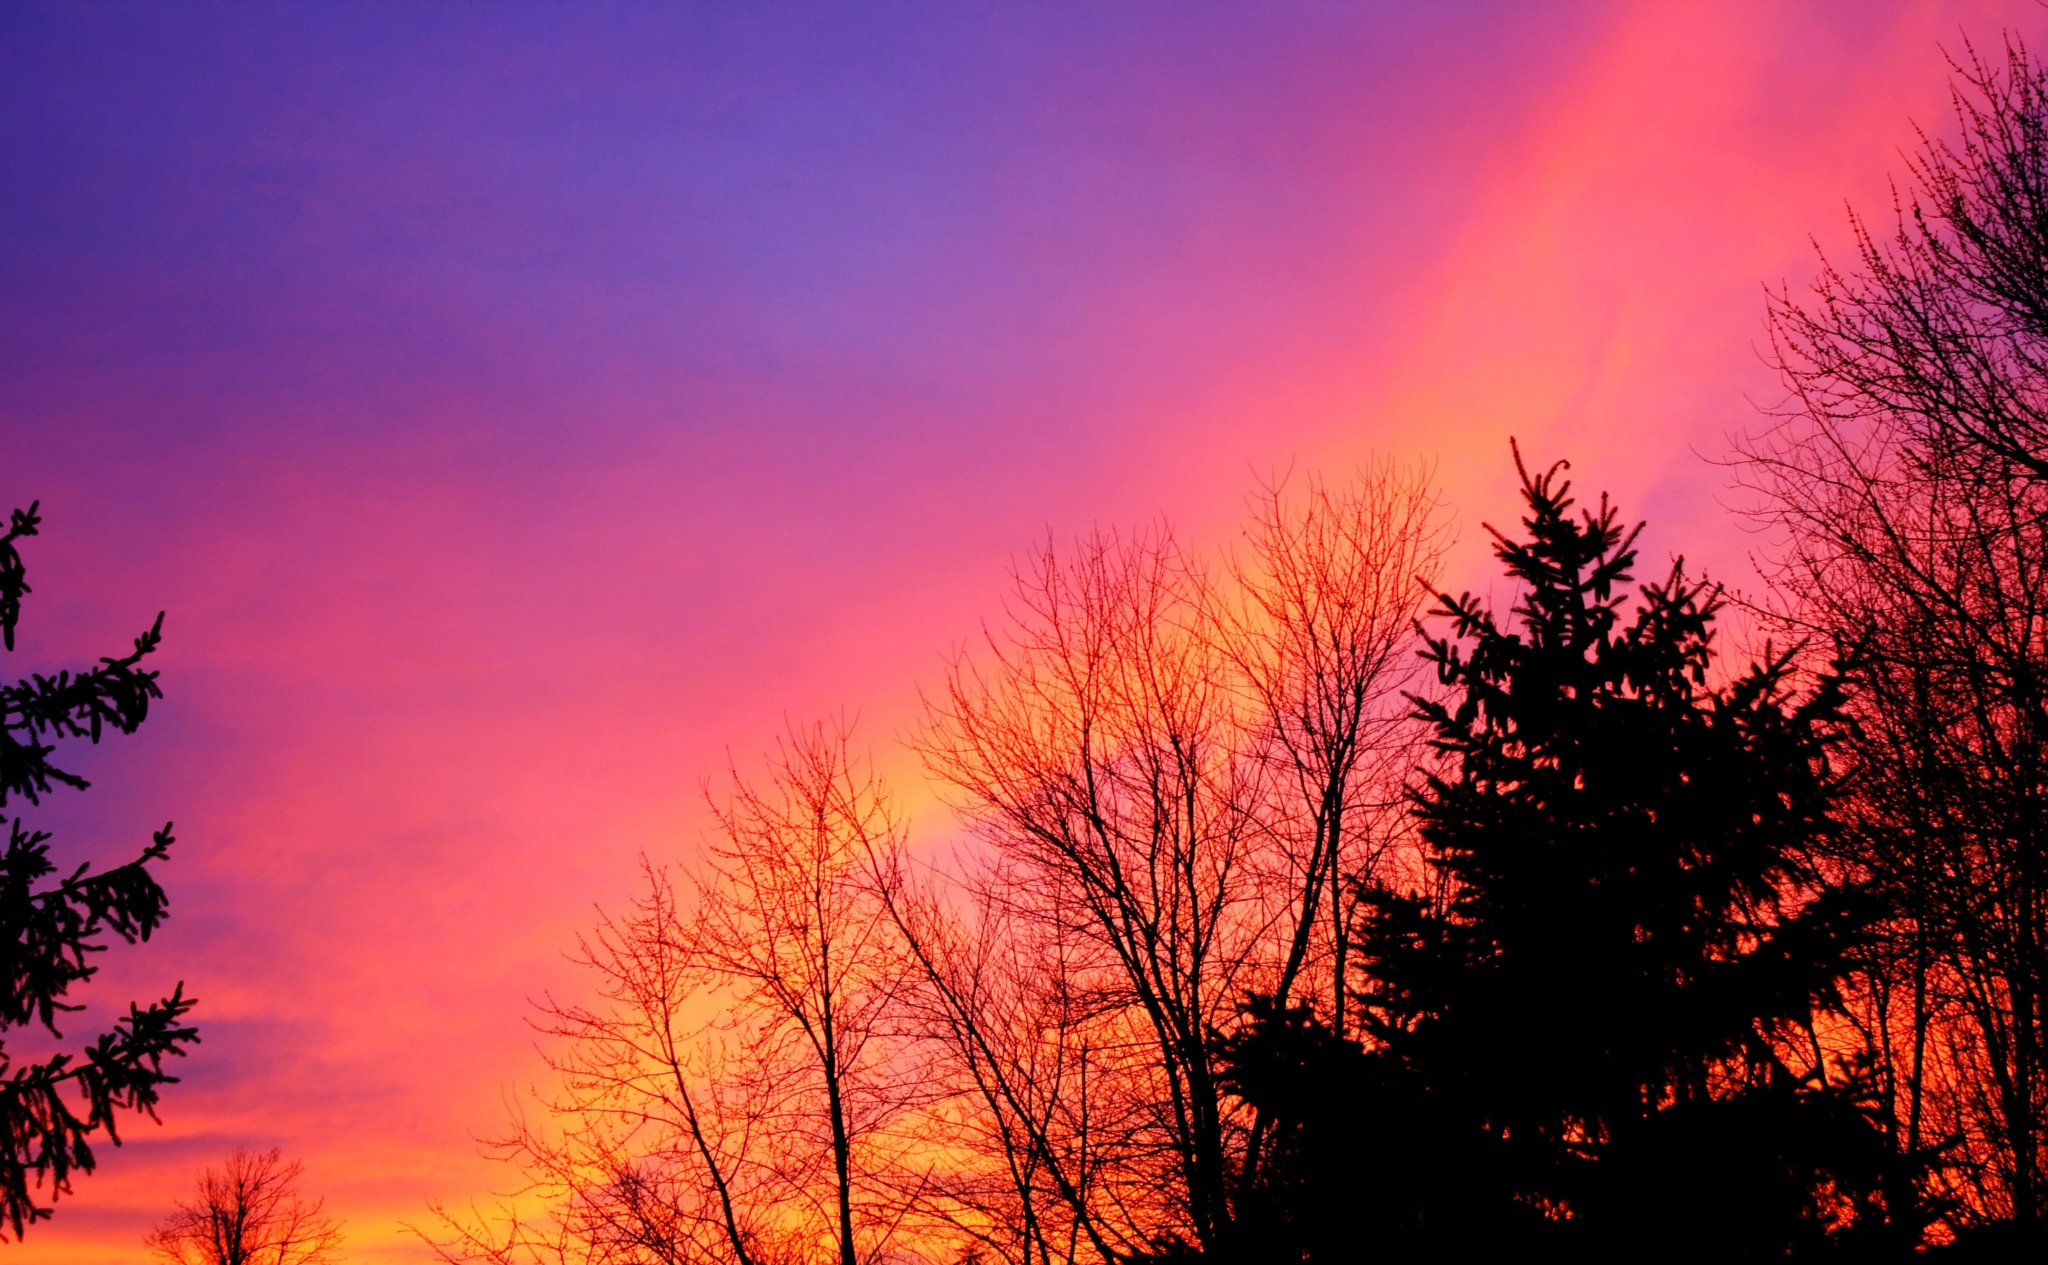 Backyard Sunset by JackieandTom Daunce